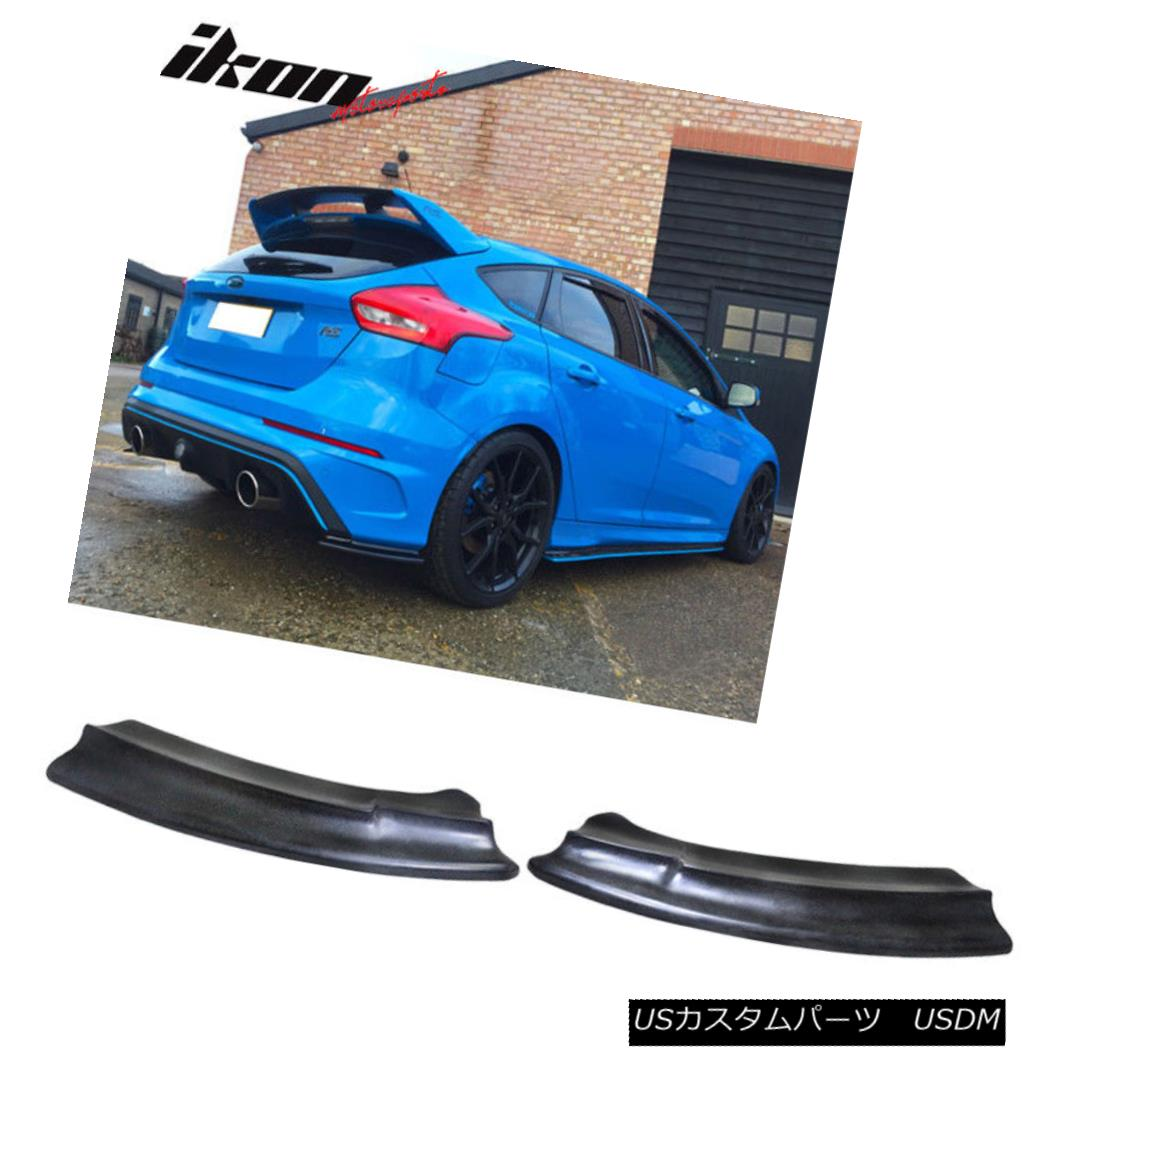 エアロパーツ Fits 16-17 Ford Focus RS Trim Rear Aprons Valences Lip PU Pair Left Right フィット16-17フォードフォーカスRSトリムリアエプロンValences Lip PU Pair Left Right